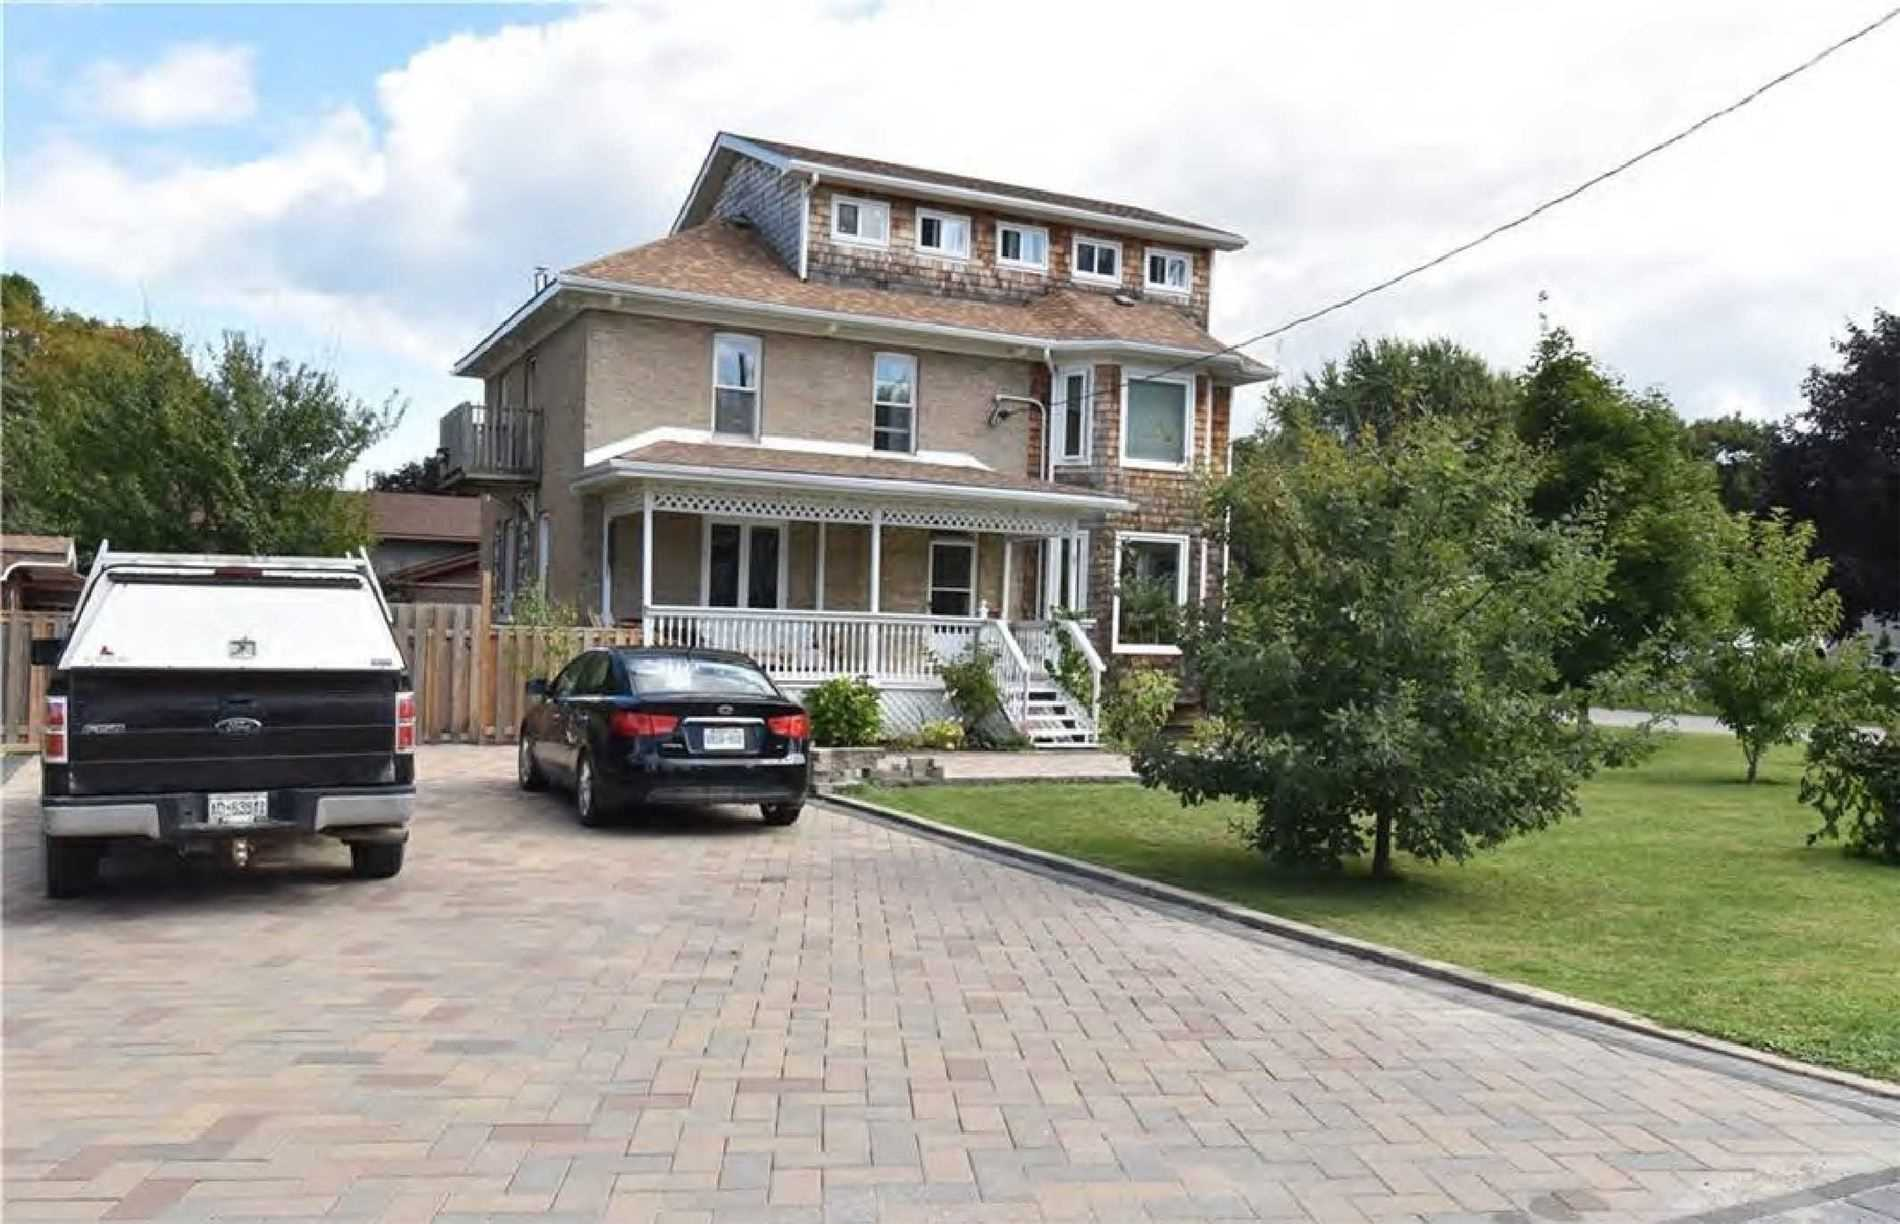 pictures of house for sale MLS: X4632990 located at 87 Union St, Meaford N4L1E6